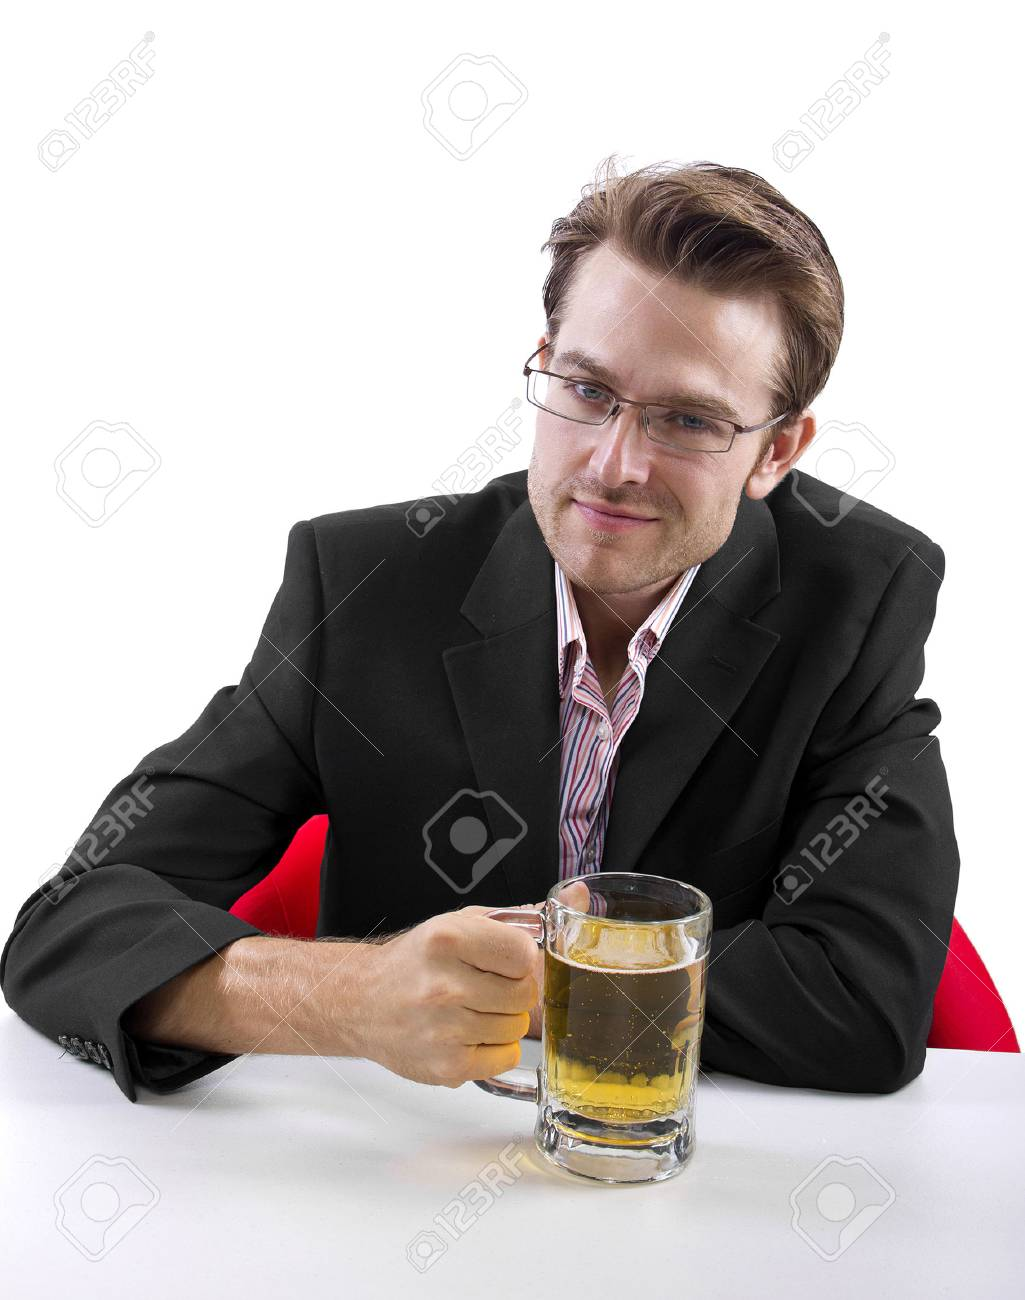 Businessman drinking beer on a white countertop Stock Photo - 25160424